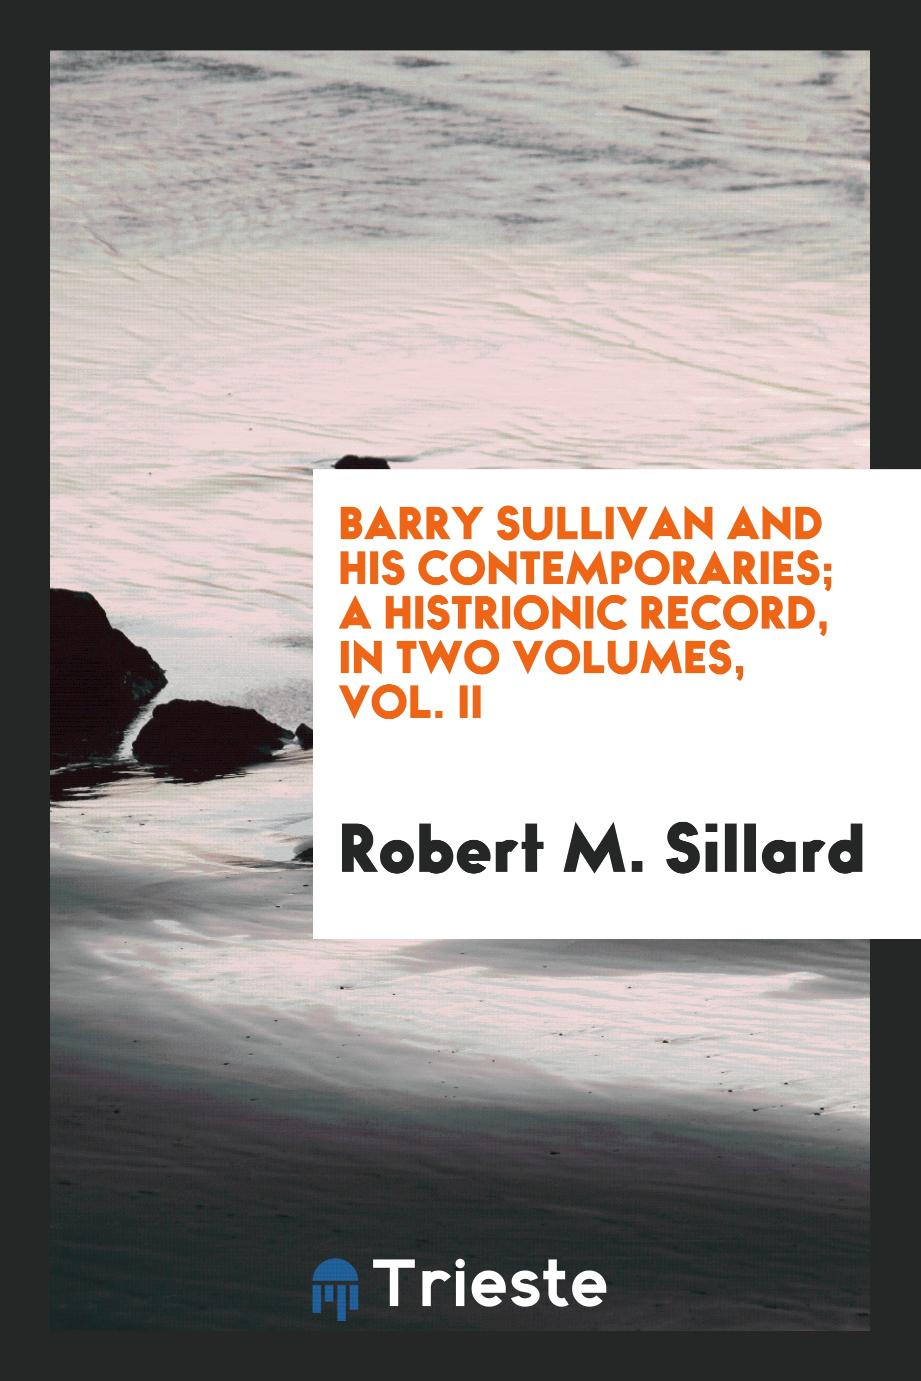 Barry Sullivan and his contemporaries; a histrionic record, in two volumes, Vol. II